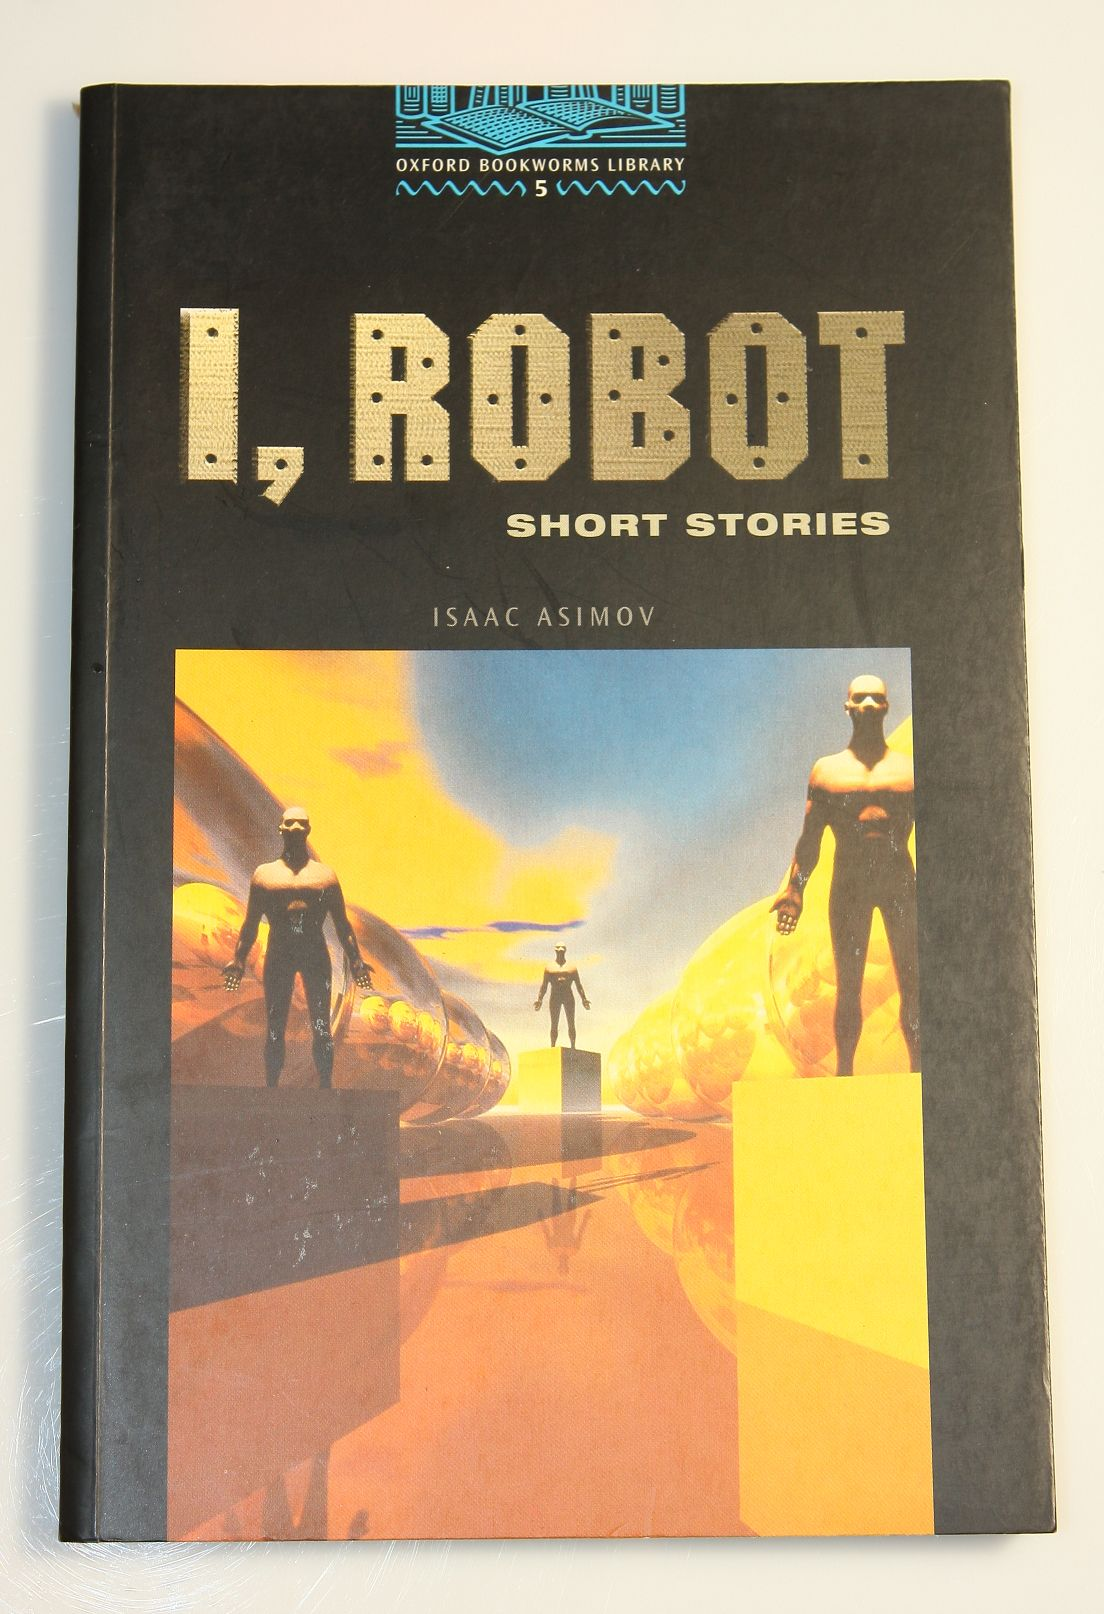 Oxford Bookworms Library 1 I Robot Oxford Bookworms Library Short Stories 5 By